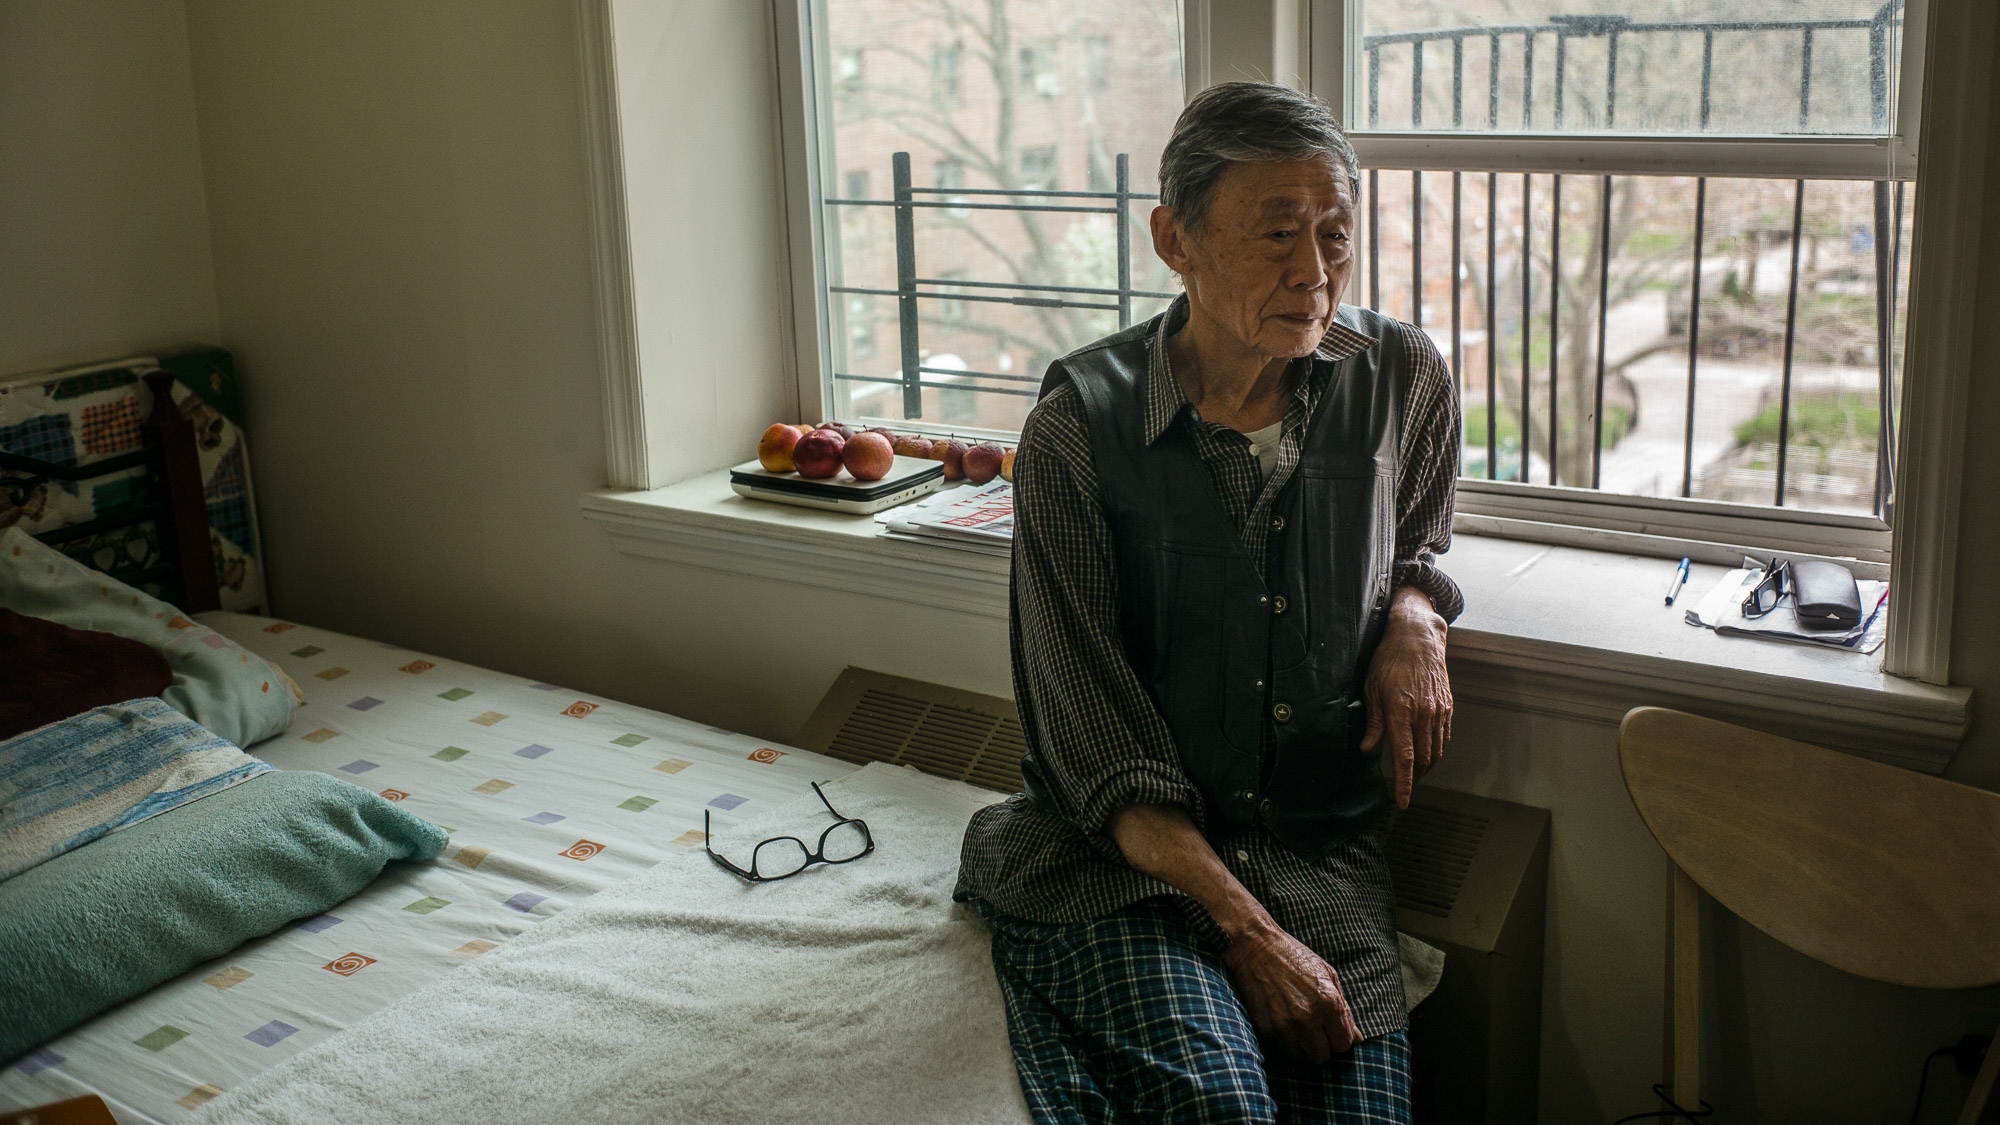 AAFE, a Nonprofit and One of Chinatown's Largest Landlords, Has a Troubling Record